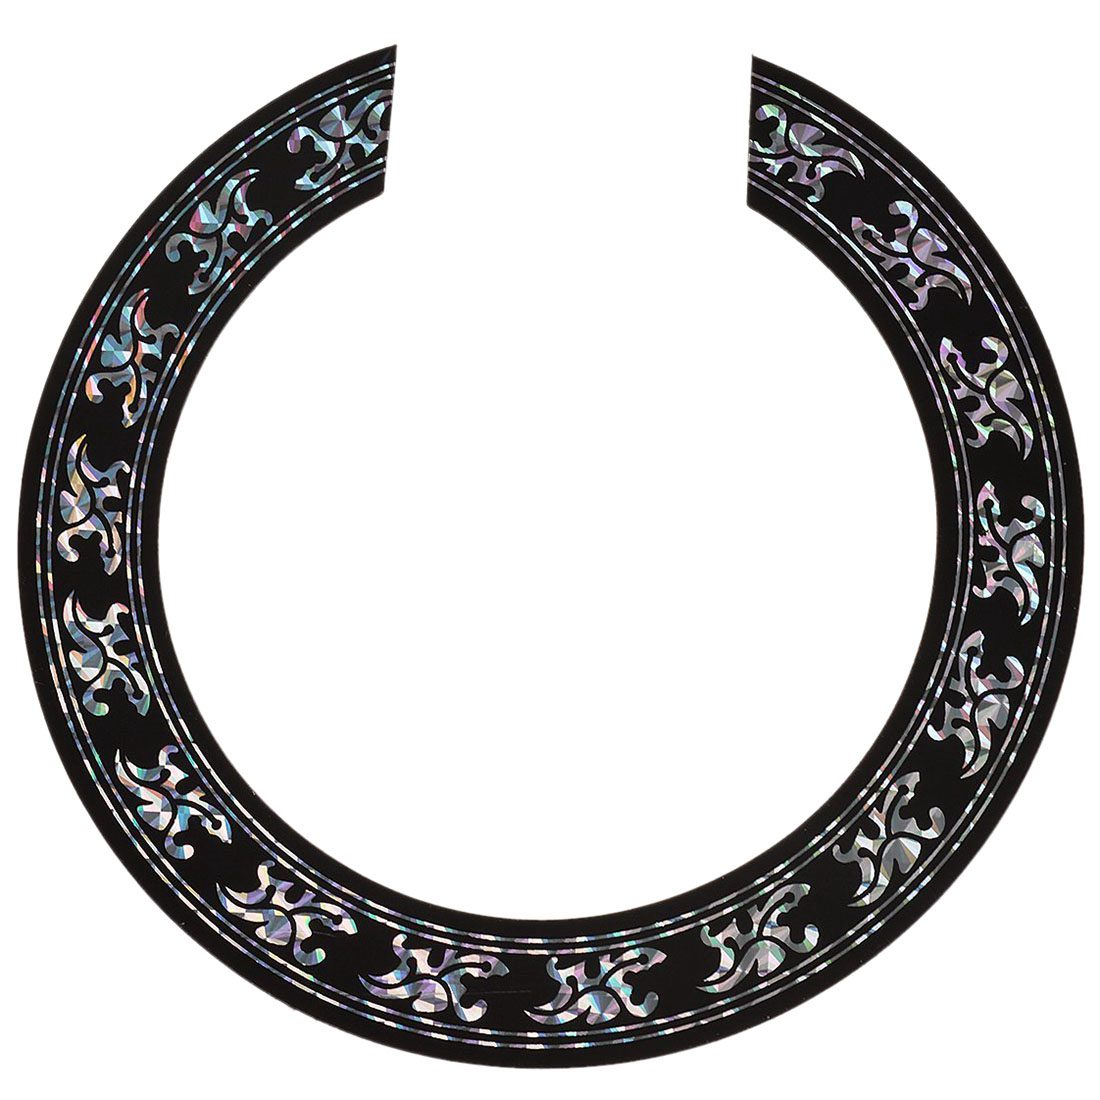 Sound hole Rose Decal Sticker for Acoustic Classical Guitar Parts Black+Silver savarez 510 cantiga series alliance cantiga normal high tension classical guitar strings full set 510arj